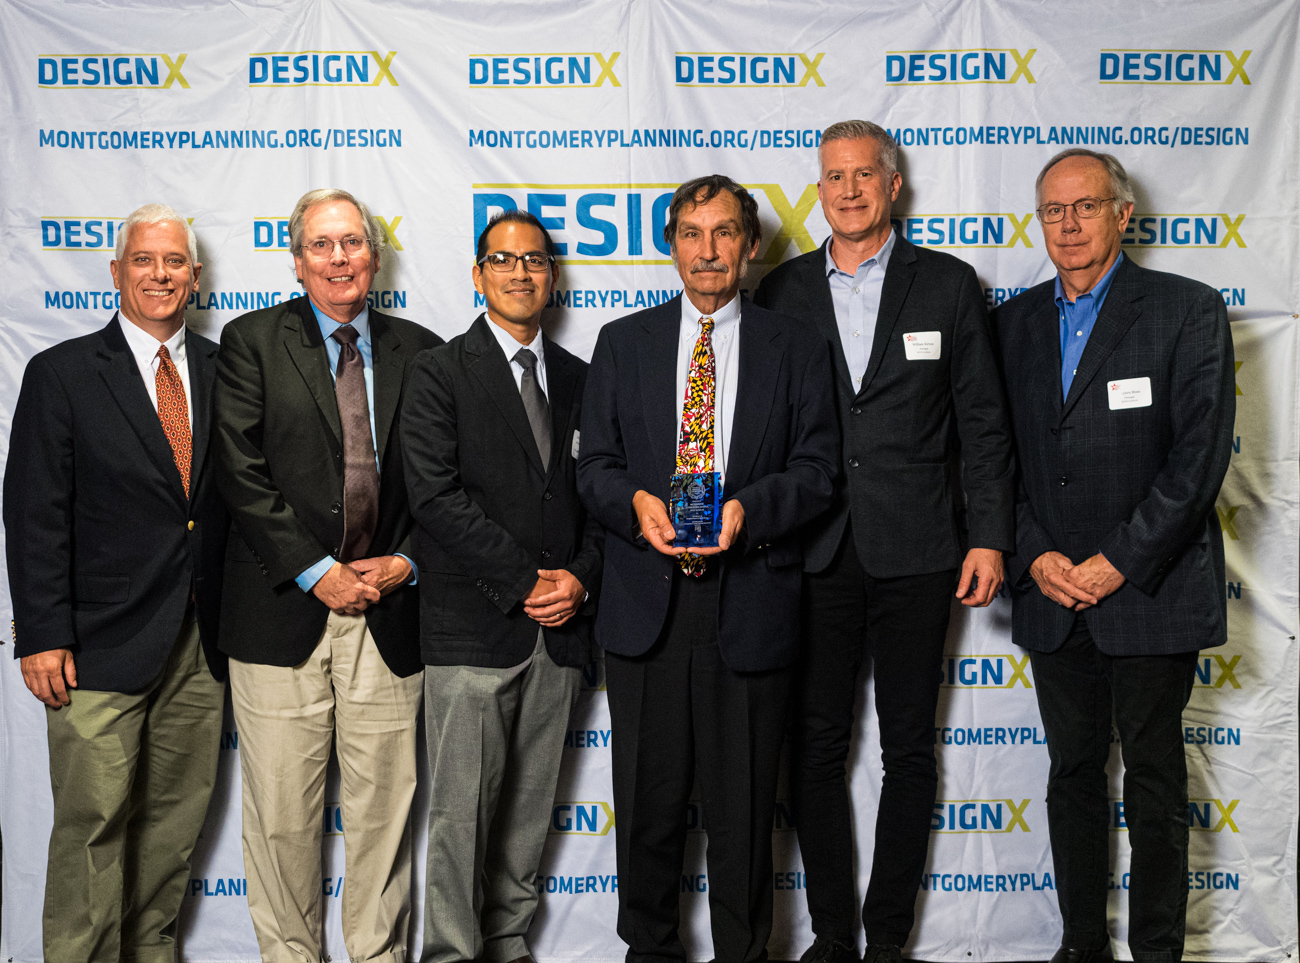 2019 Design Excellence Award winners with Planning Board Chair Casey Anderson